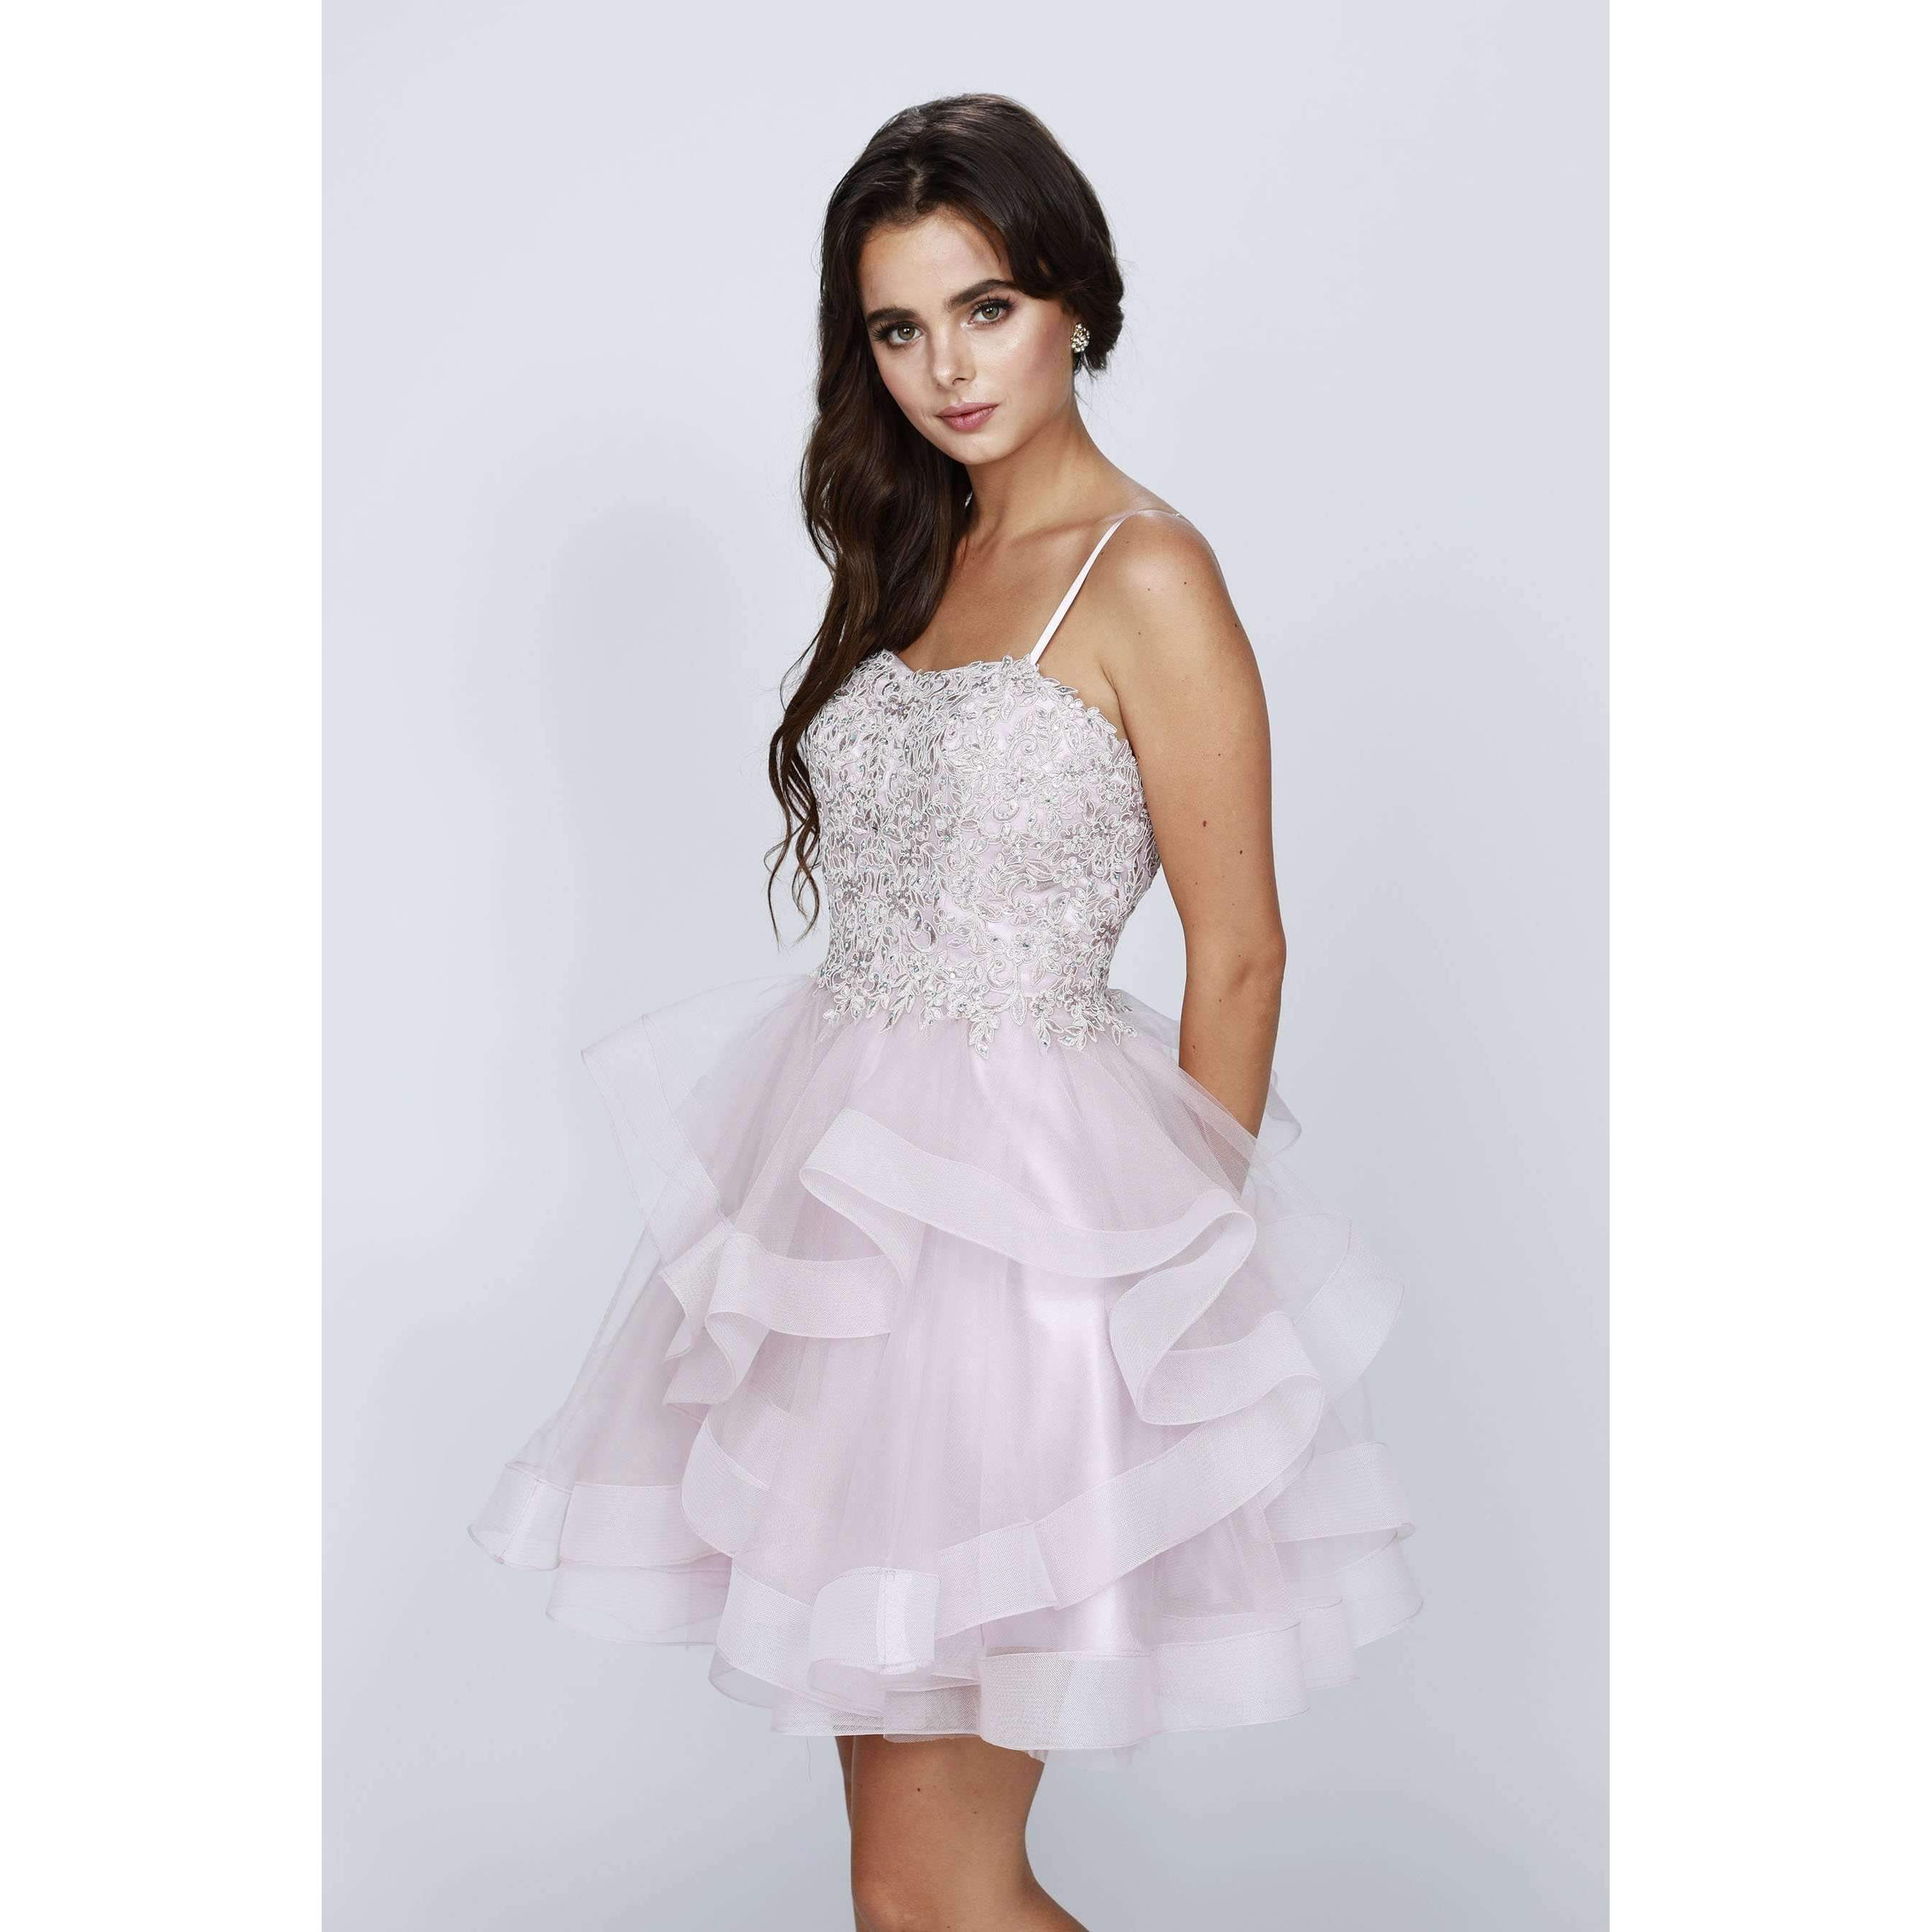 Tiered Tulle Strapless Short Dress 825 - Julietdresses